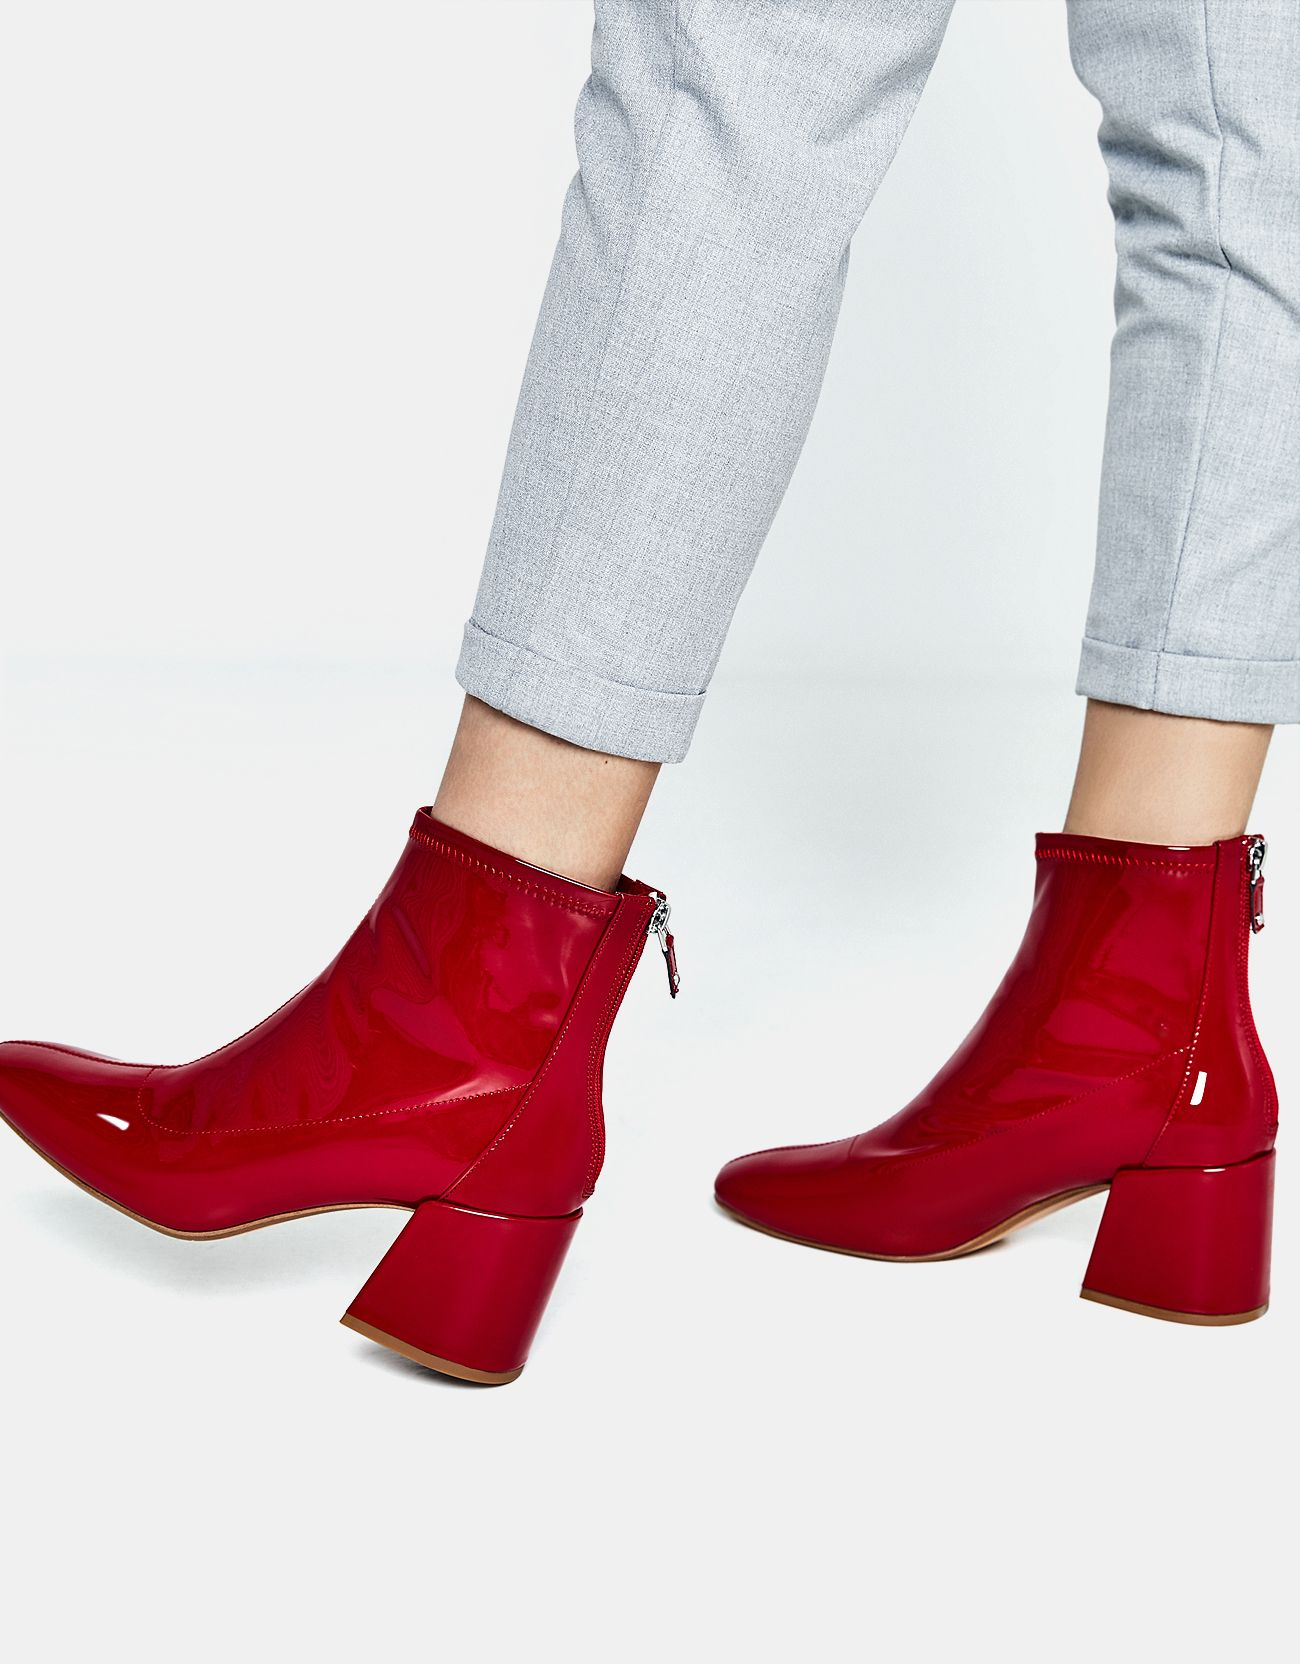 ad15a66035f Mid-heel ankle boots with a patent finish. Discover this and many more  items in Bershka with new products every week